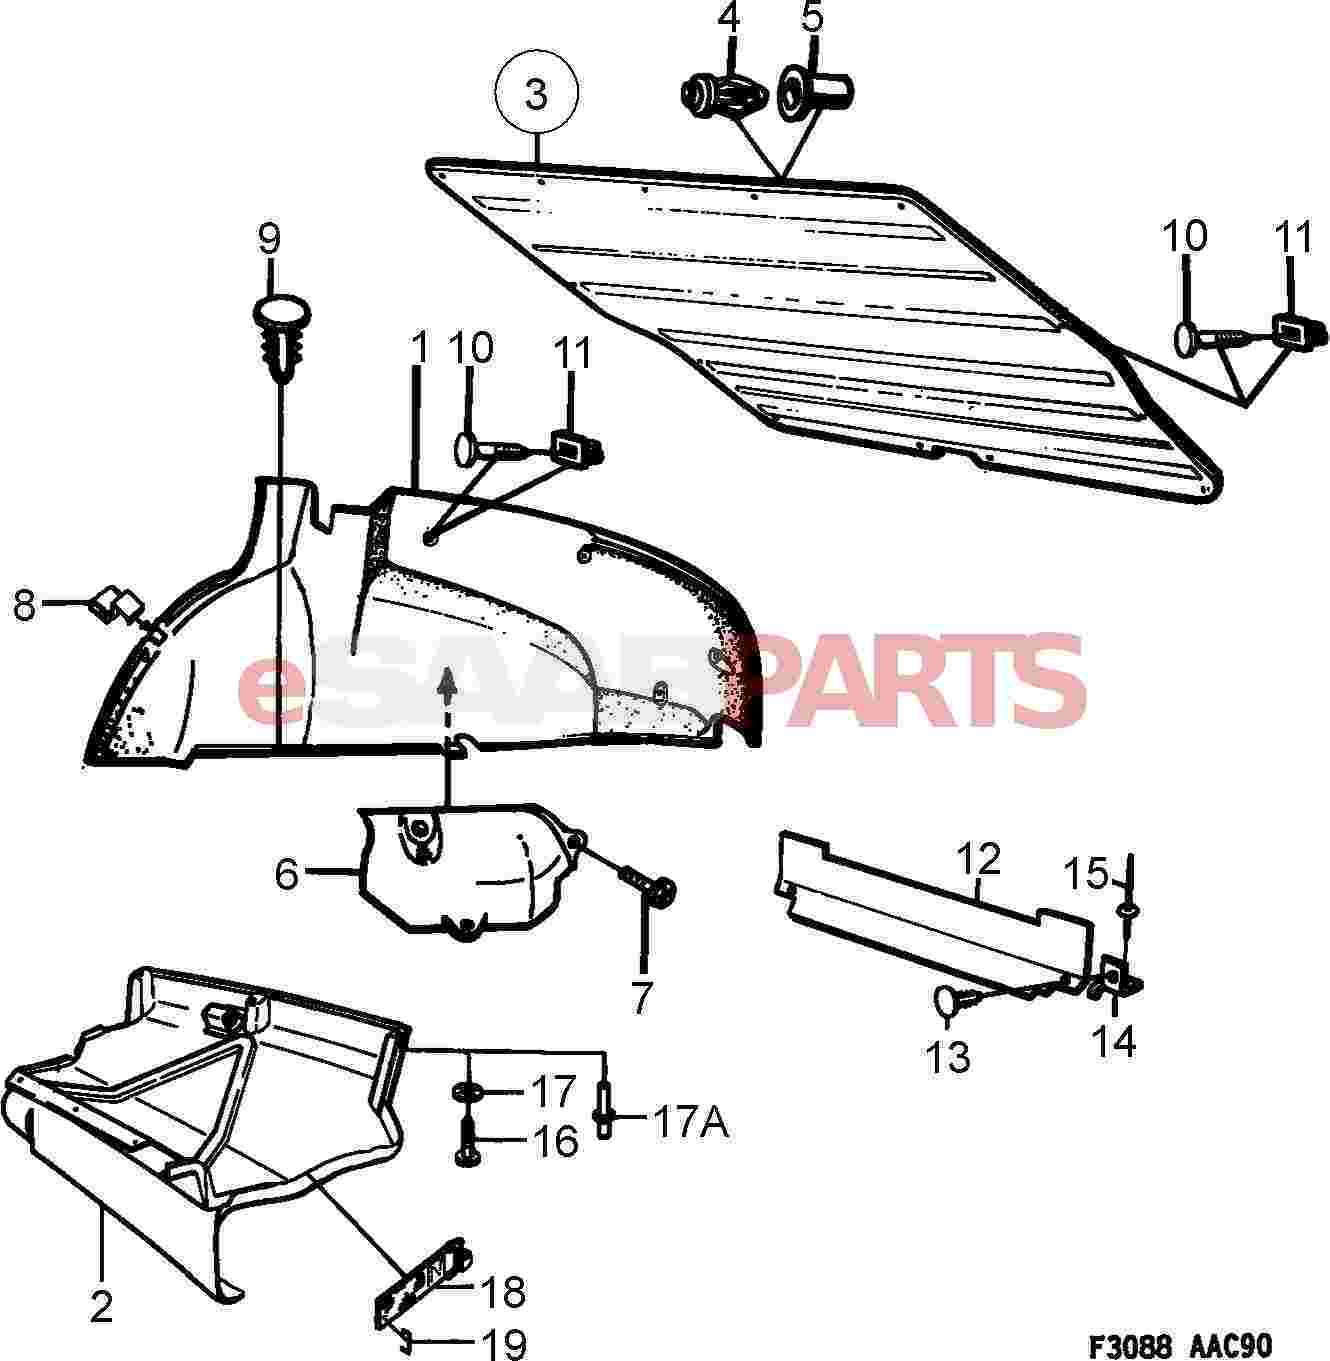 saab 9 5 headlight wiring wiring diagram and parts diagram images